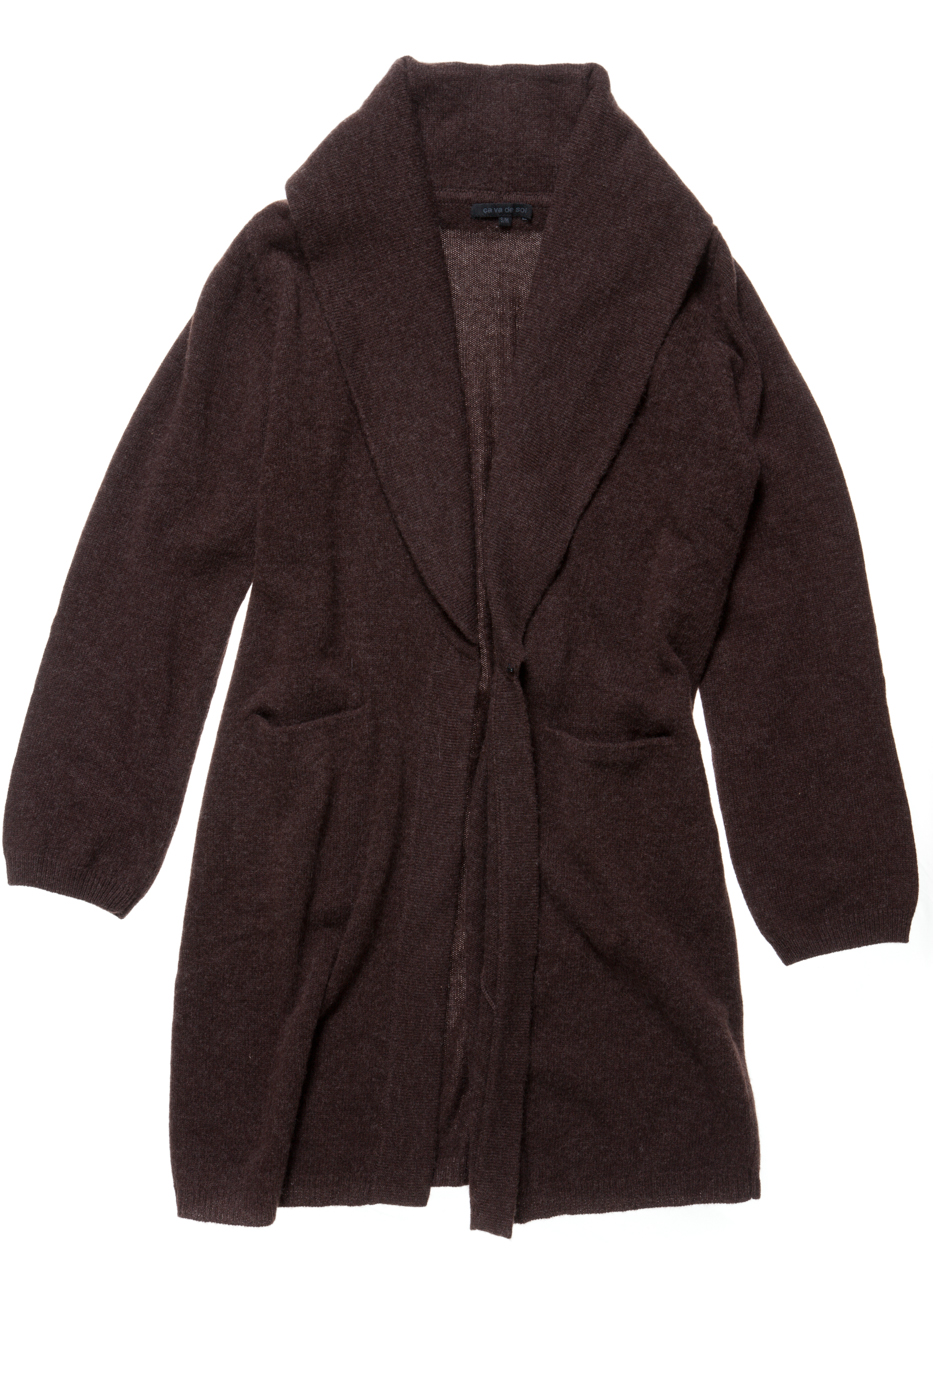 adora-virginwool-coat-shawl collar